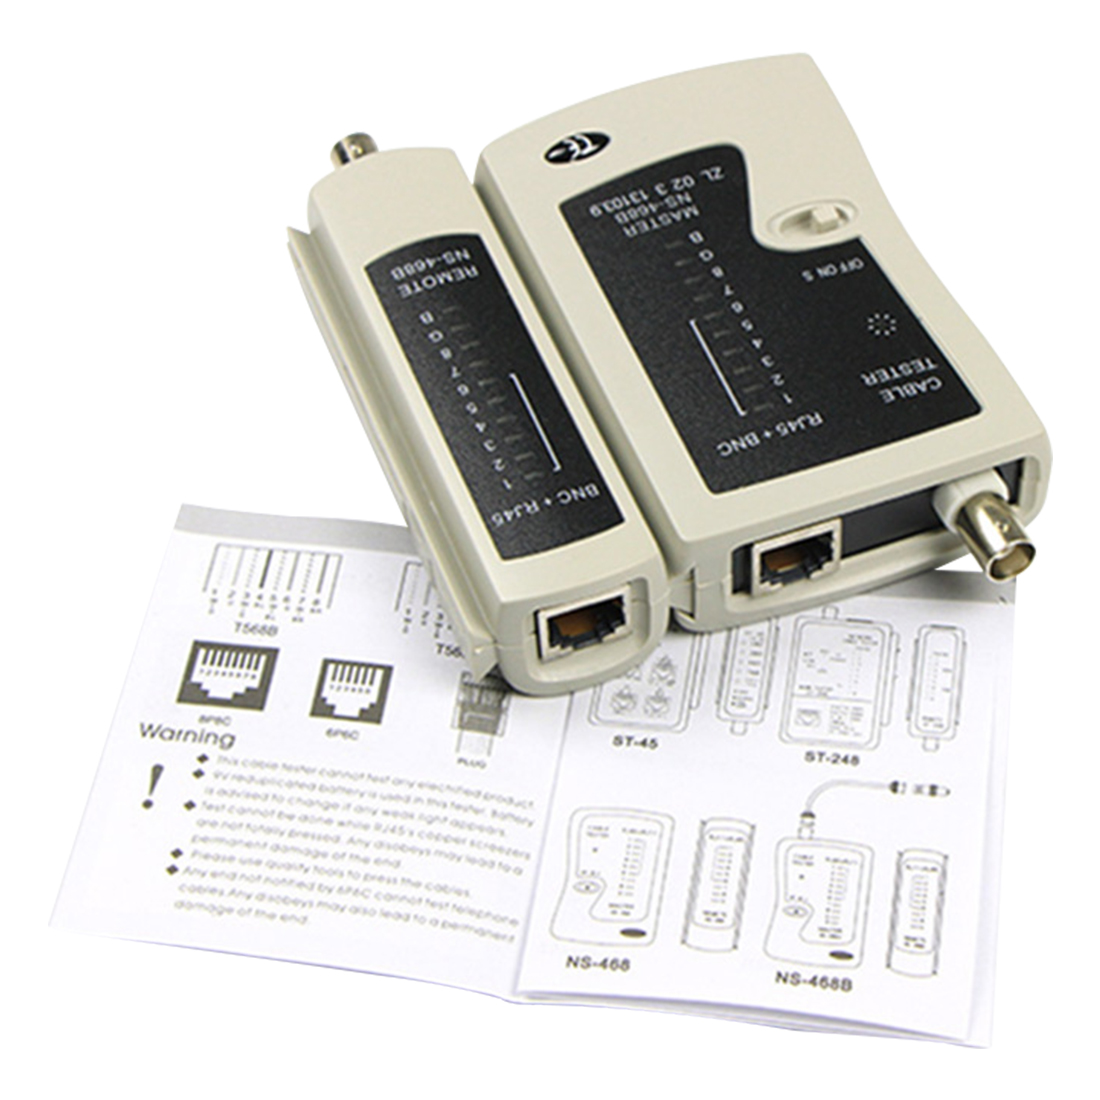 Image 2 - NOYOKERE Hot Sale RJ45 RJ11 RJ12 CAT5 CAT 6 High Quality UTP Network Lan Cable Tester Test Tool-in Networking Tools from Computer & Office